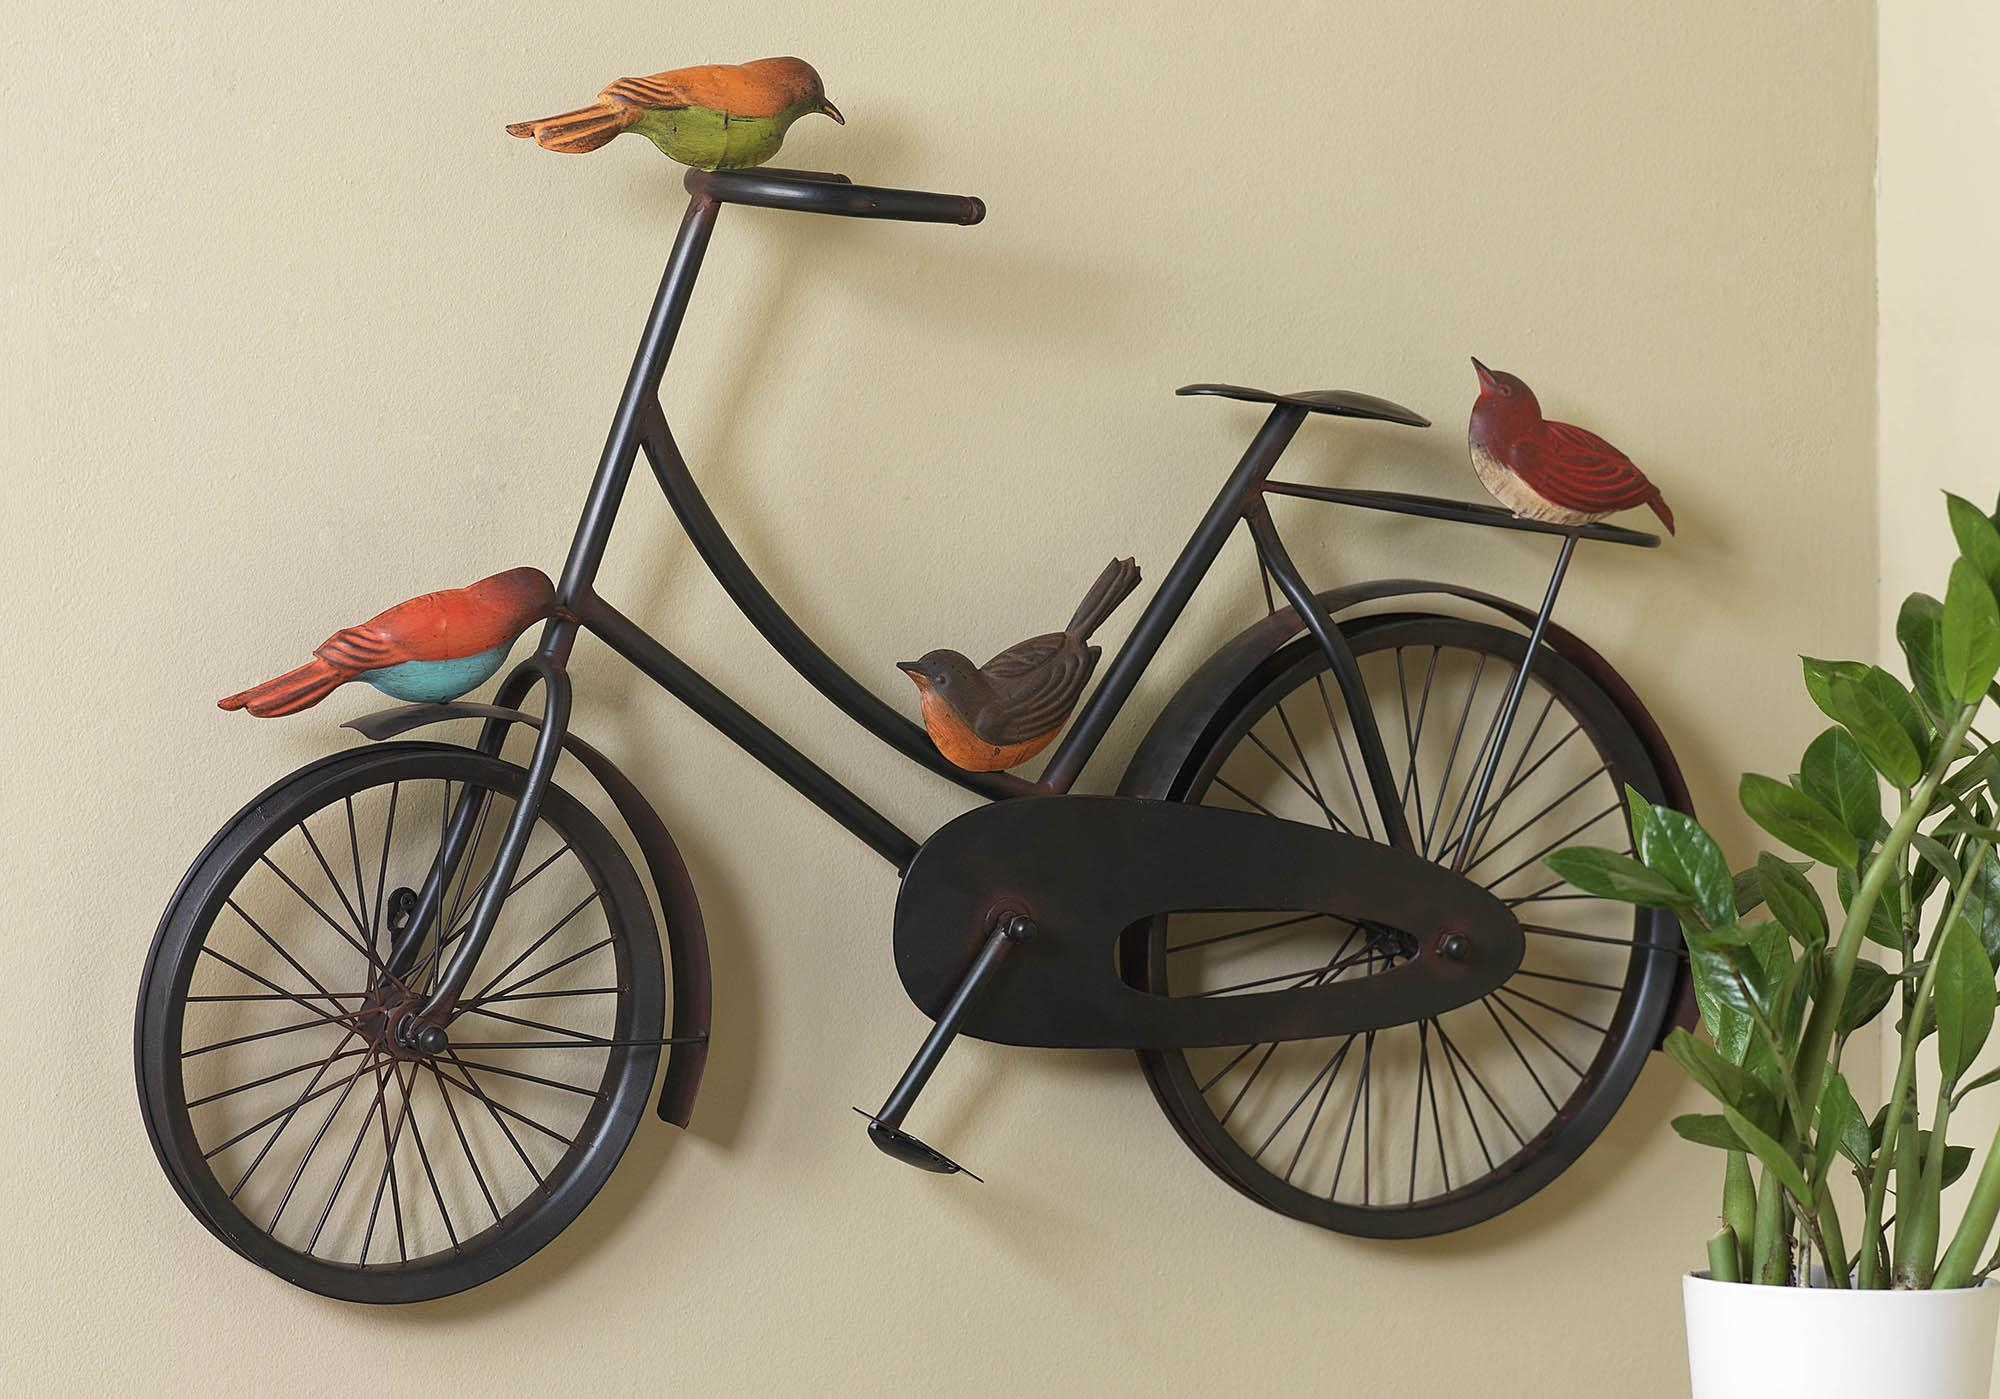 Bare Wall Remedies | Porter's Craft & Frame For Bicycle Wall Art Decor (Image 3 of 20)